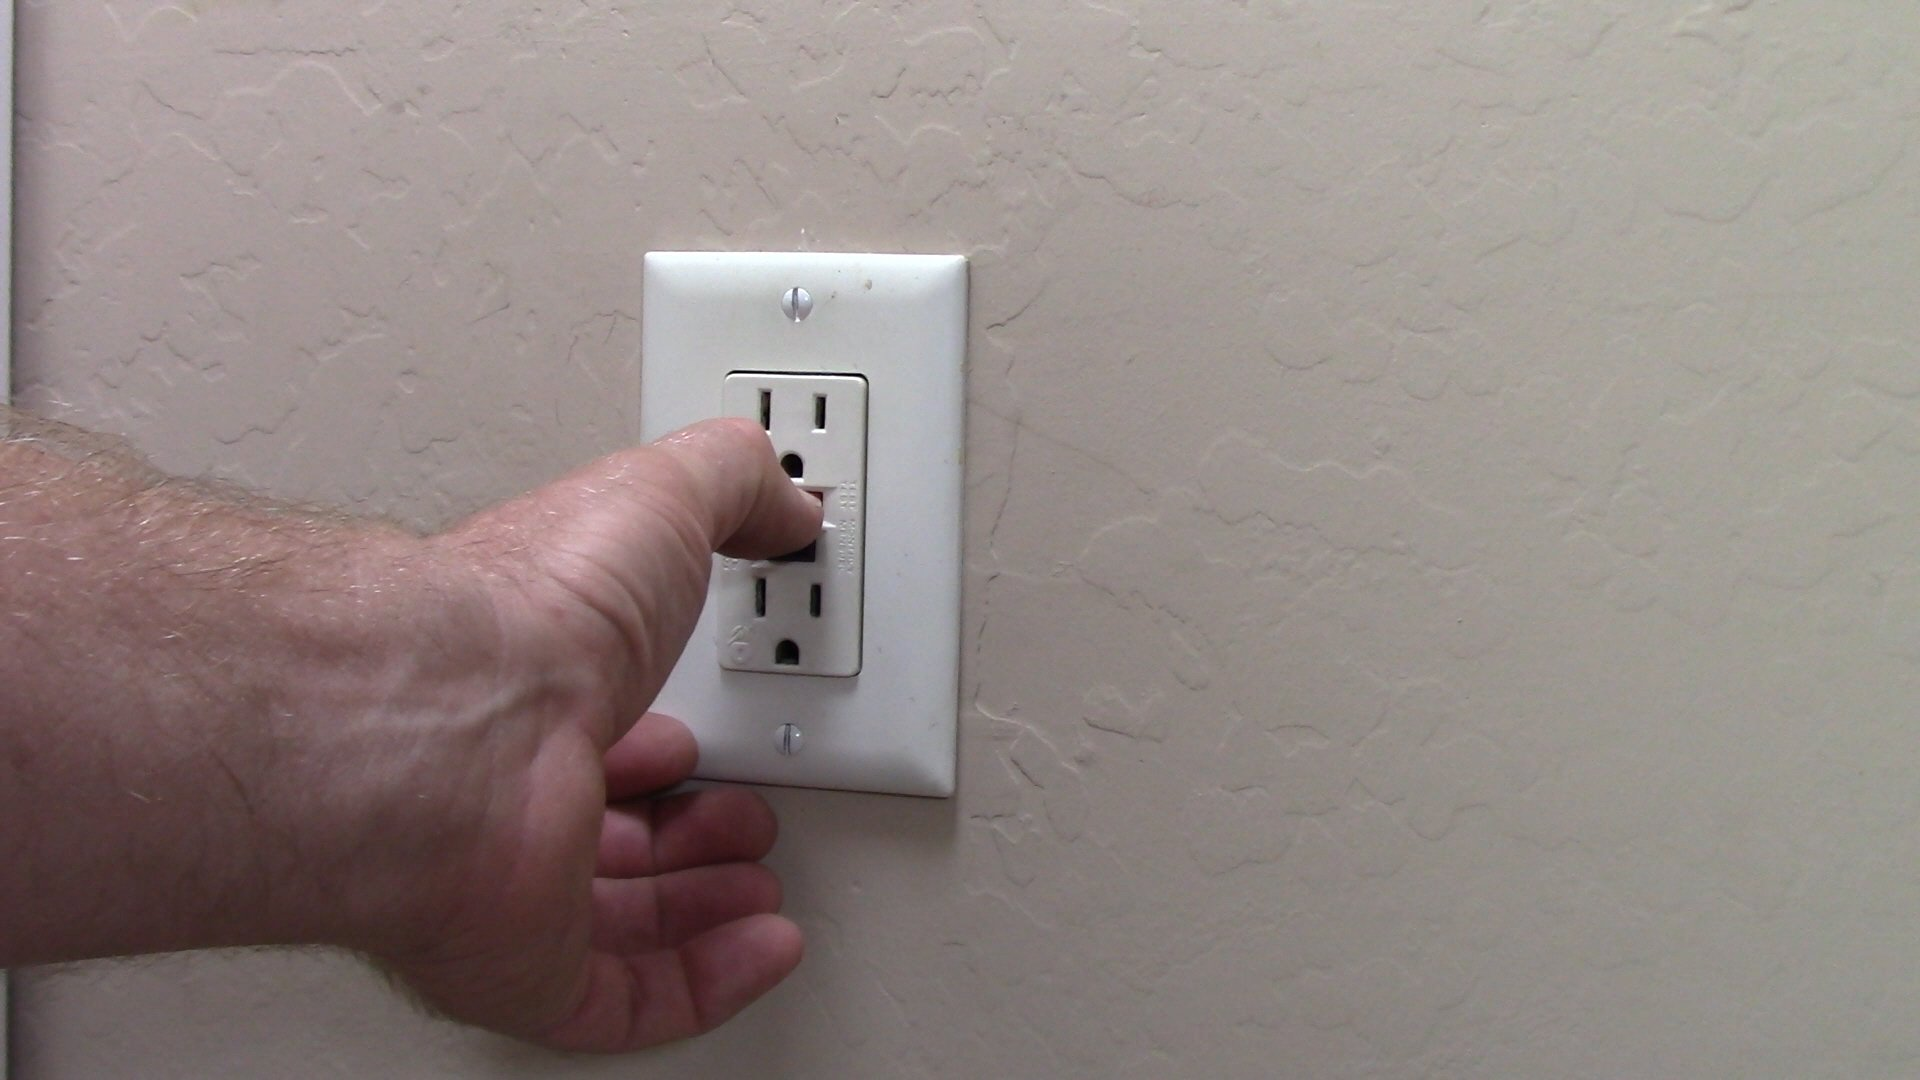 How To Replace A Faulty Gfci Receptacle Electrical Online Wiring In The Home Replaced Switch Outlet But Pushing Test Button Did Nothing Nor Reset